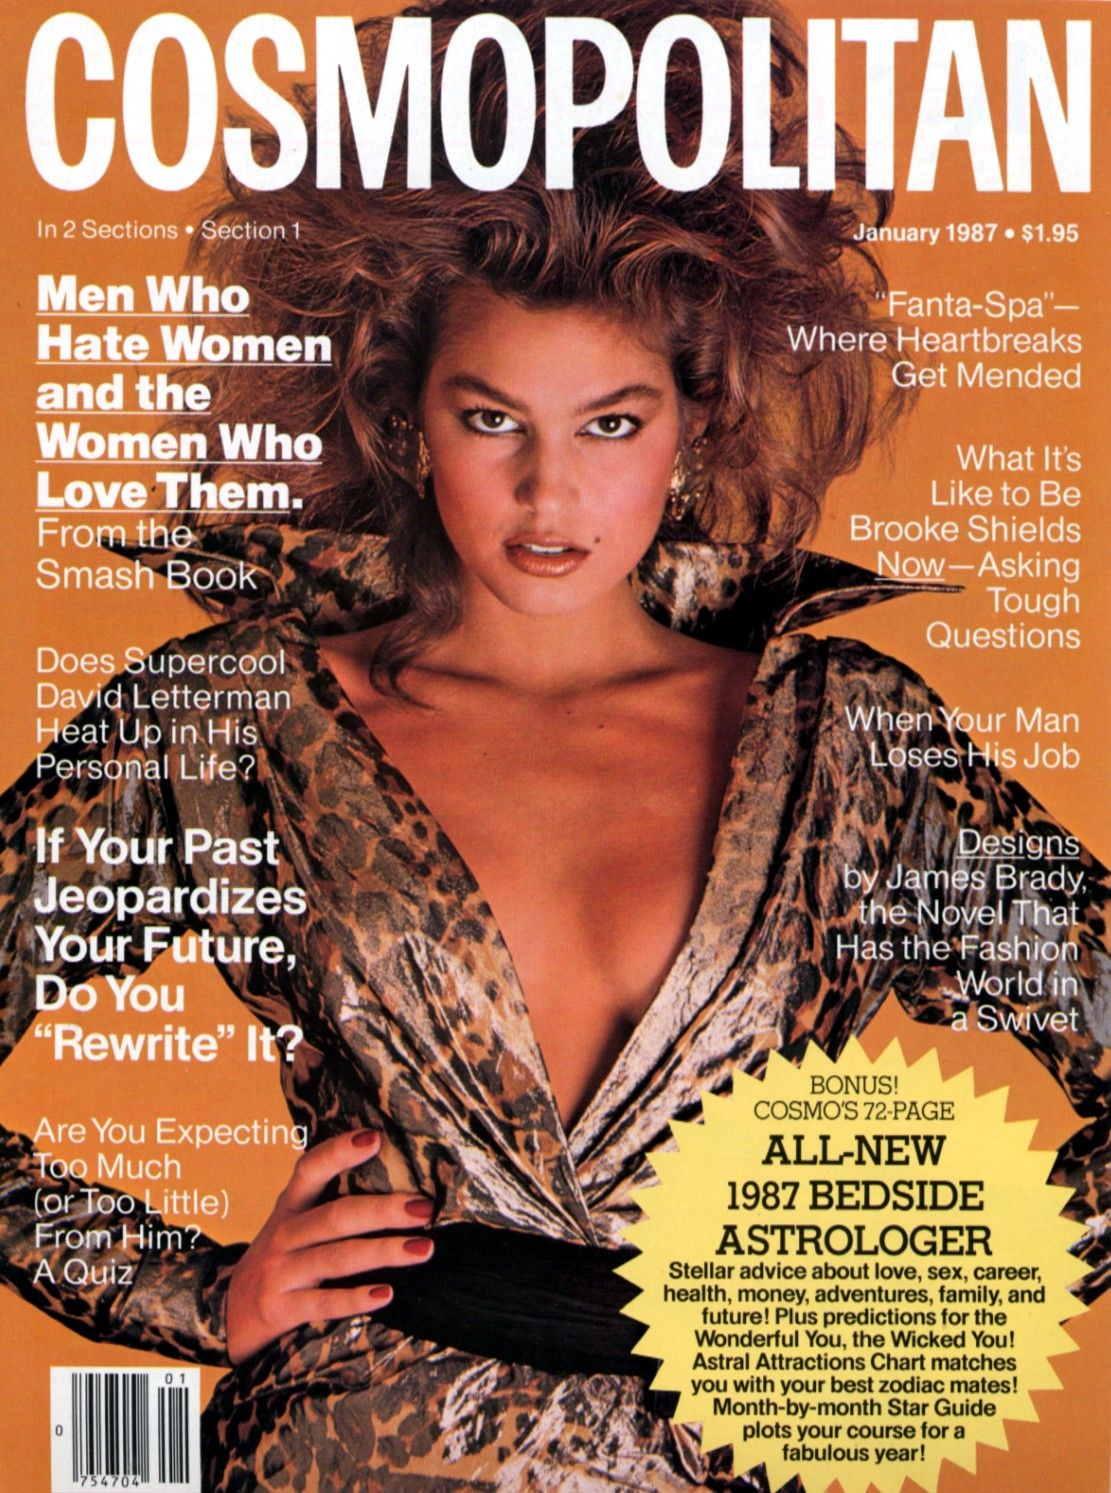 CINDY CRAWFORD |  COSMOPOLITAN JANUARY,1987  COVER PHOTOGRAPHED BY FRANCESCO SCAVULLO